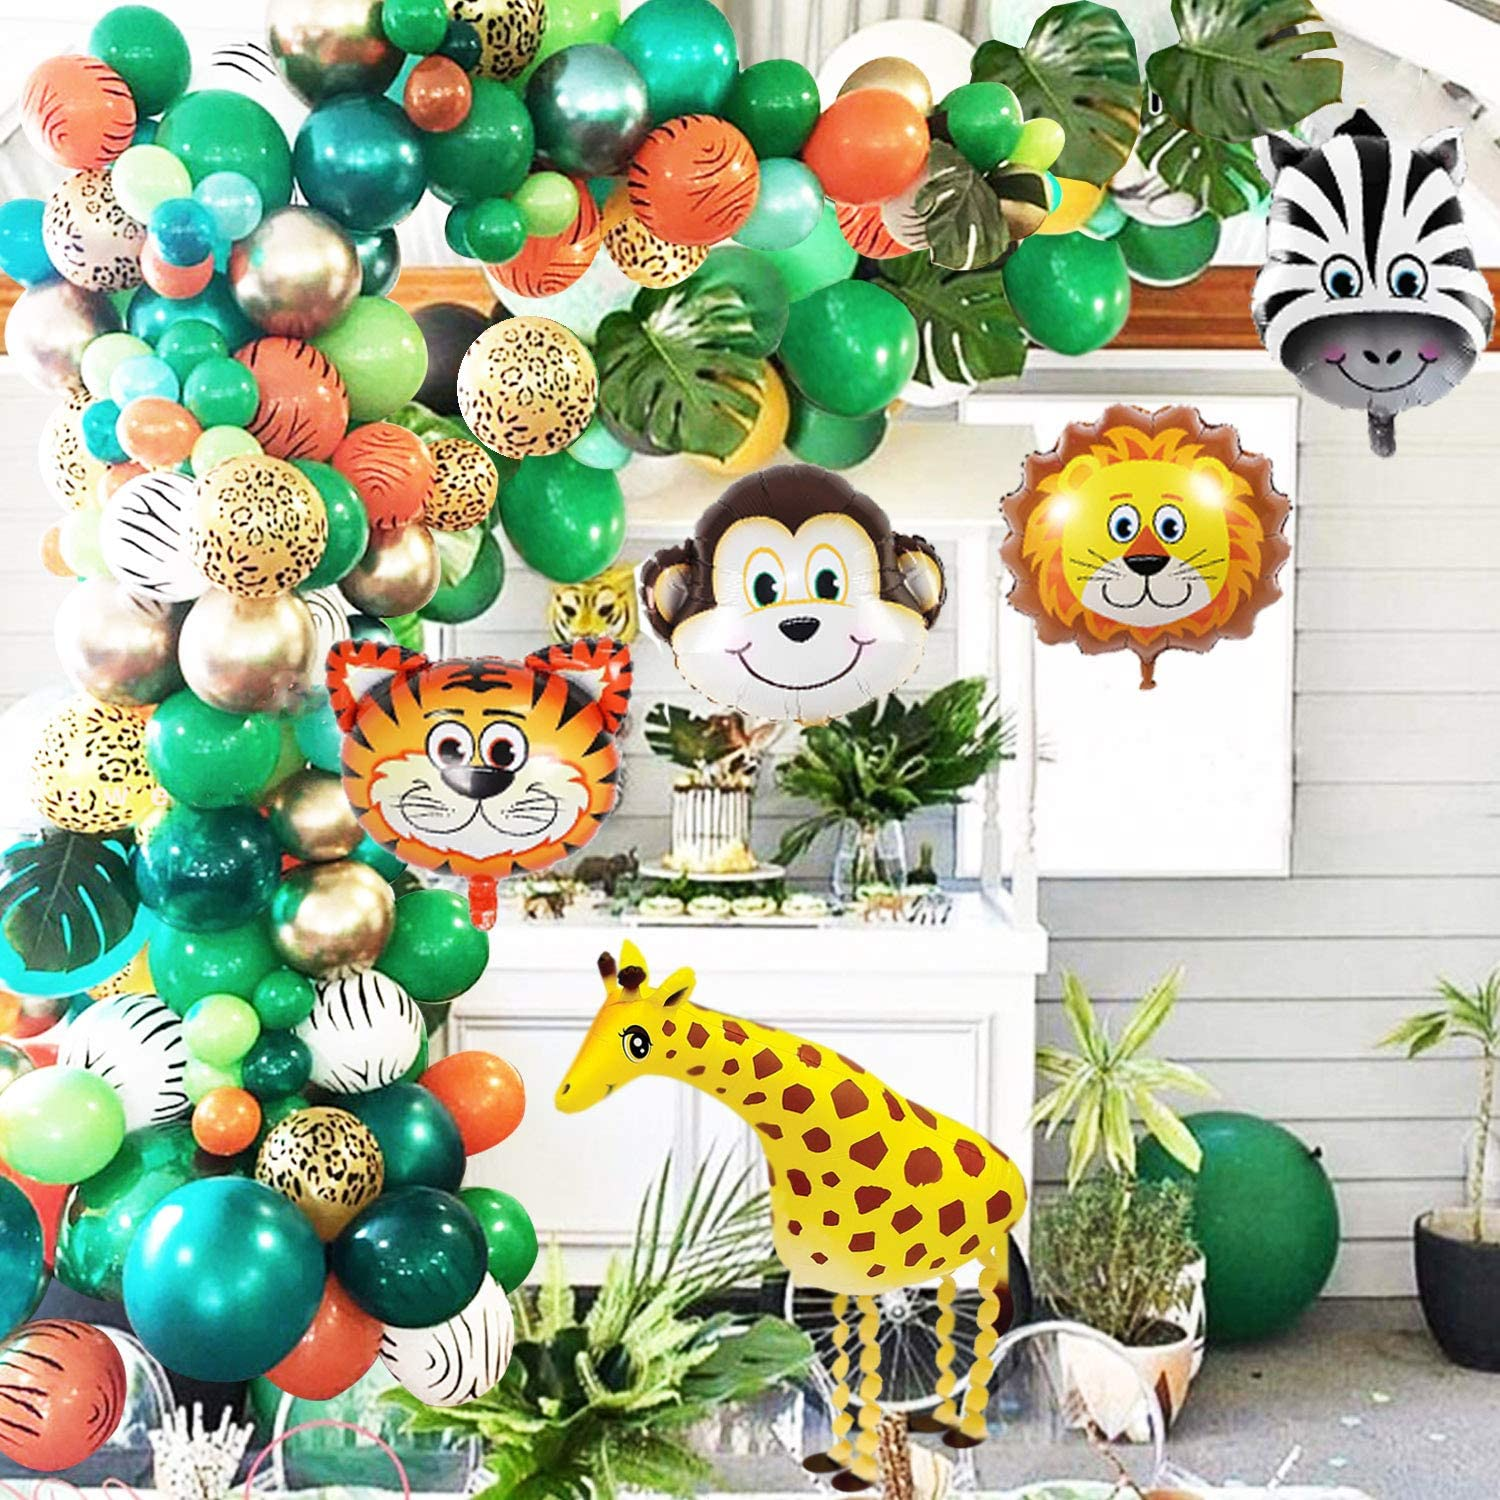 Jungle Safari Theme Party Balloon Garland Kit – 151 Pack With Animal Balloons and Palm Leaves for Kids Boys Birthday Party Baby Shower Decorations